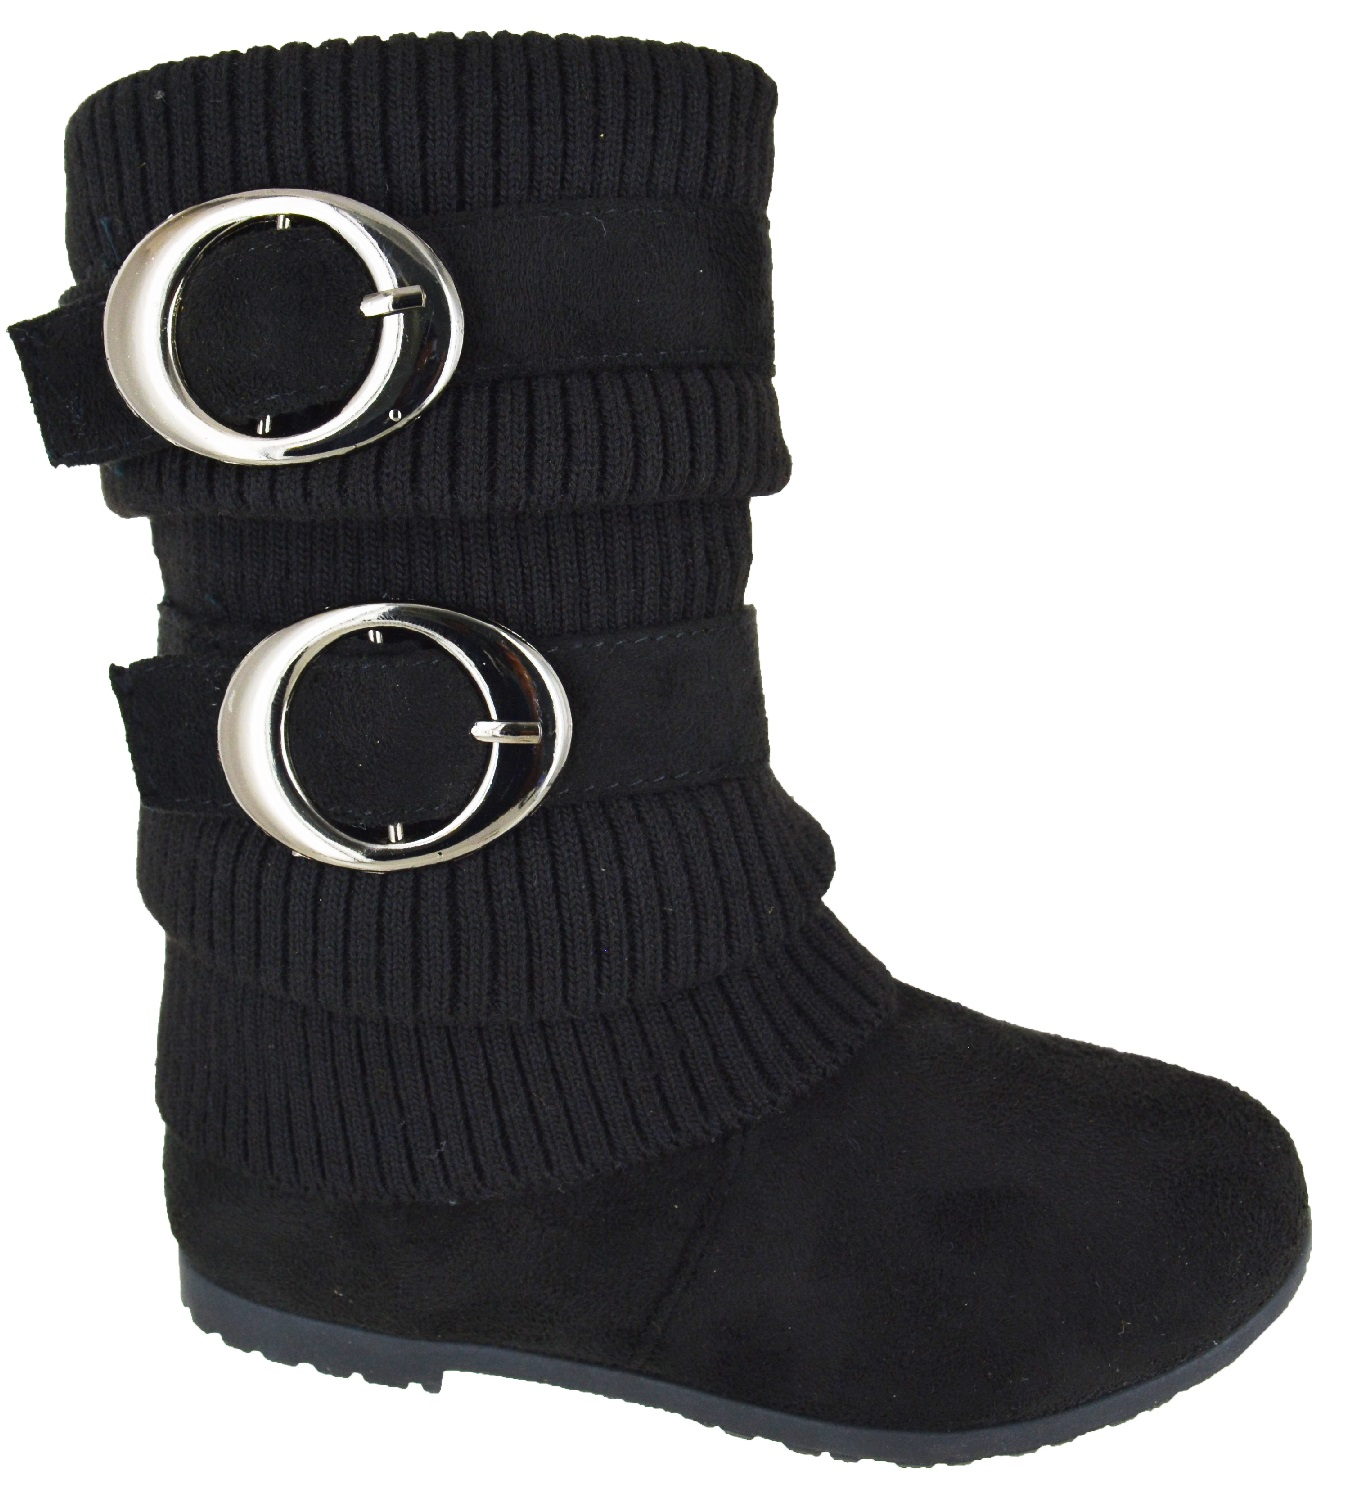 Toddler Kids Youth Girls Shoes Snow Mid Calf Boots Size Black Baby Infant